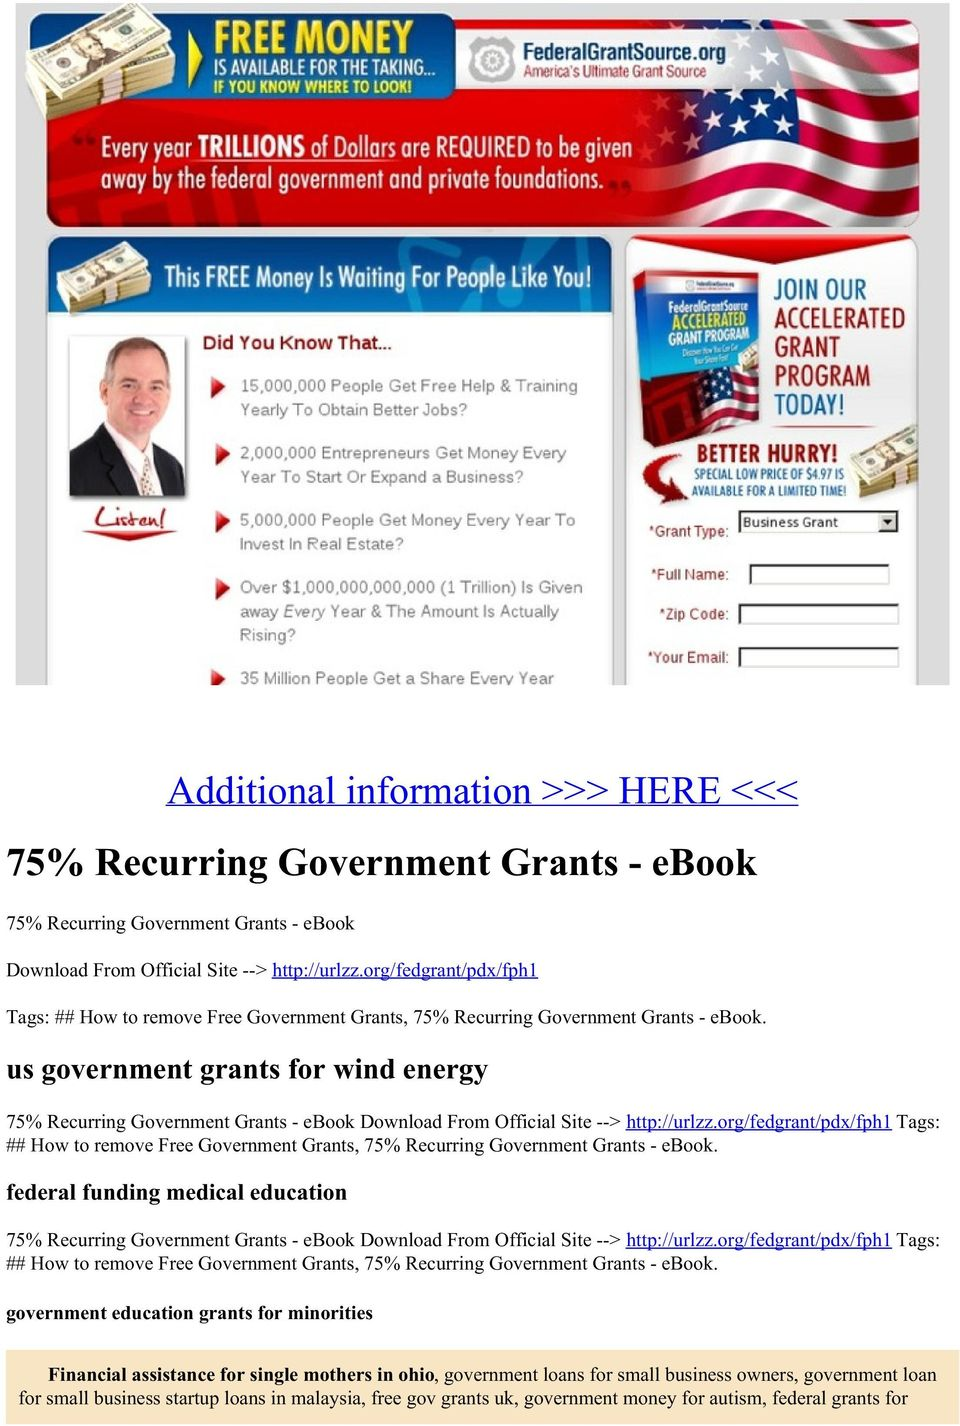 us government grants for wind energy 75% Recurring Government Grants - ebook Download From Official Site --> http://urlzz.